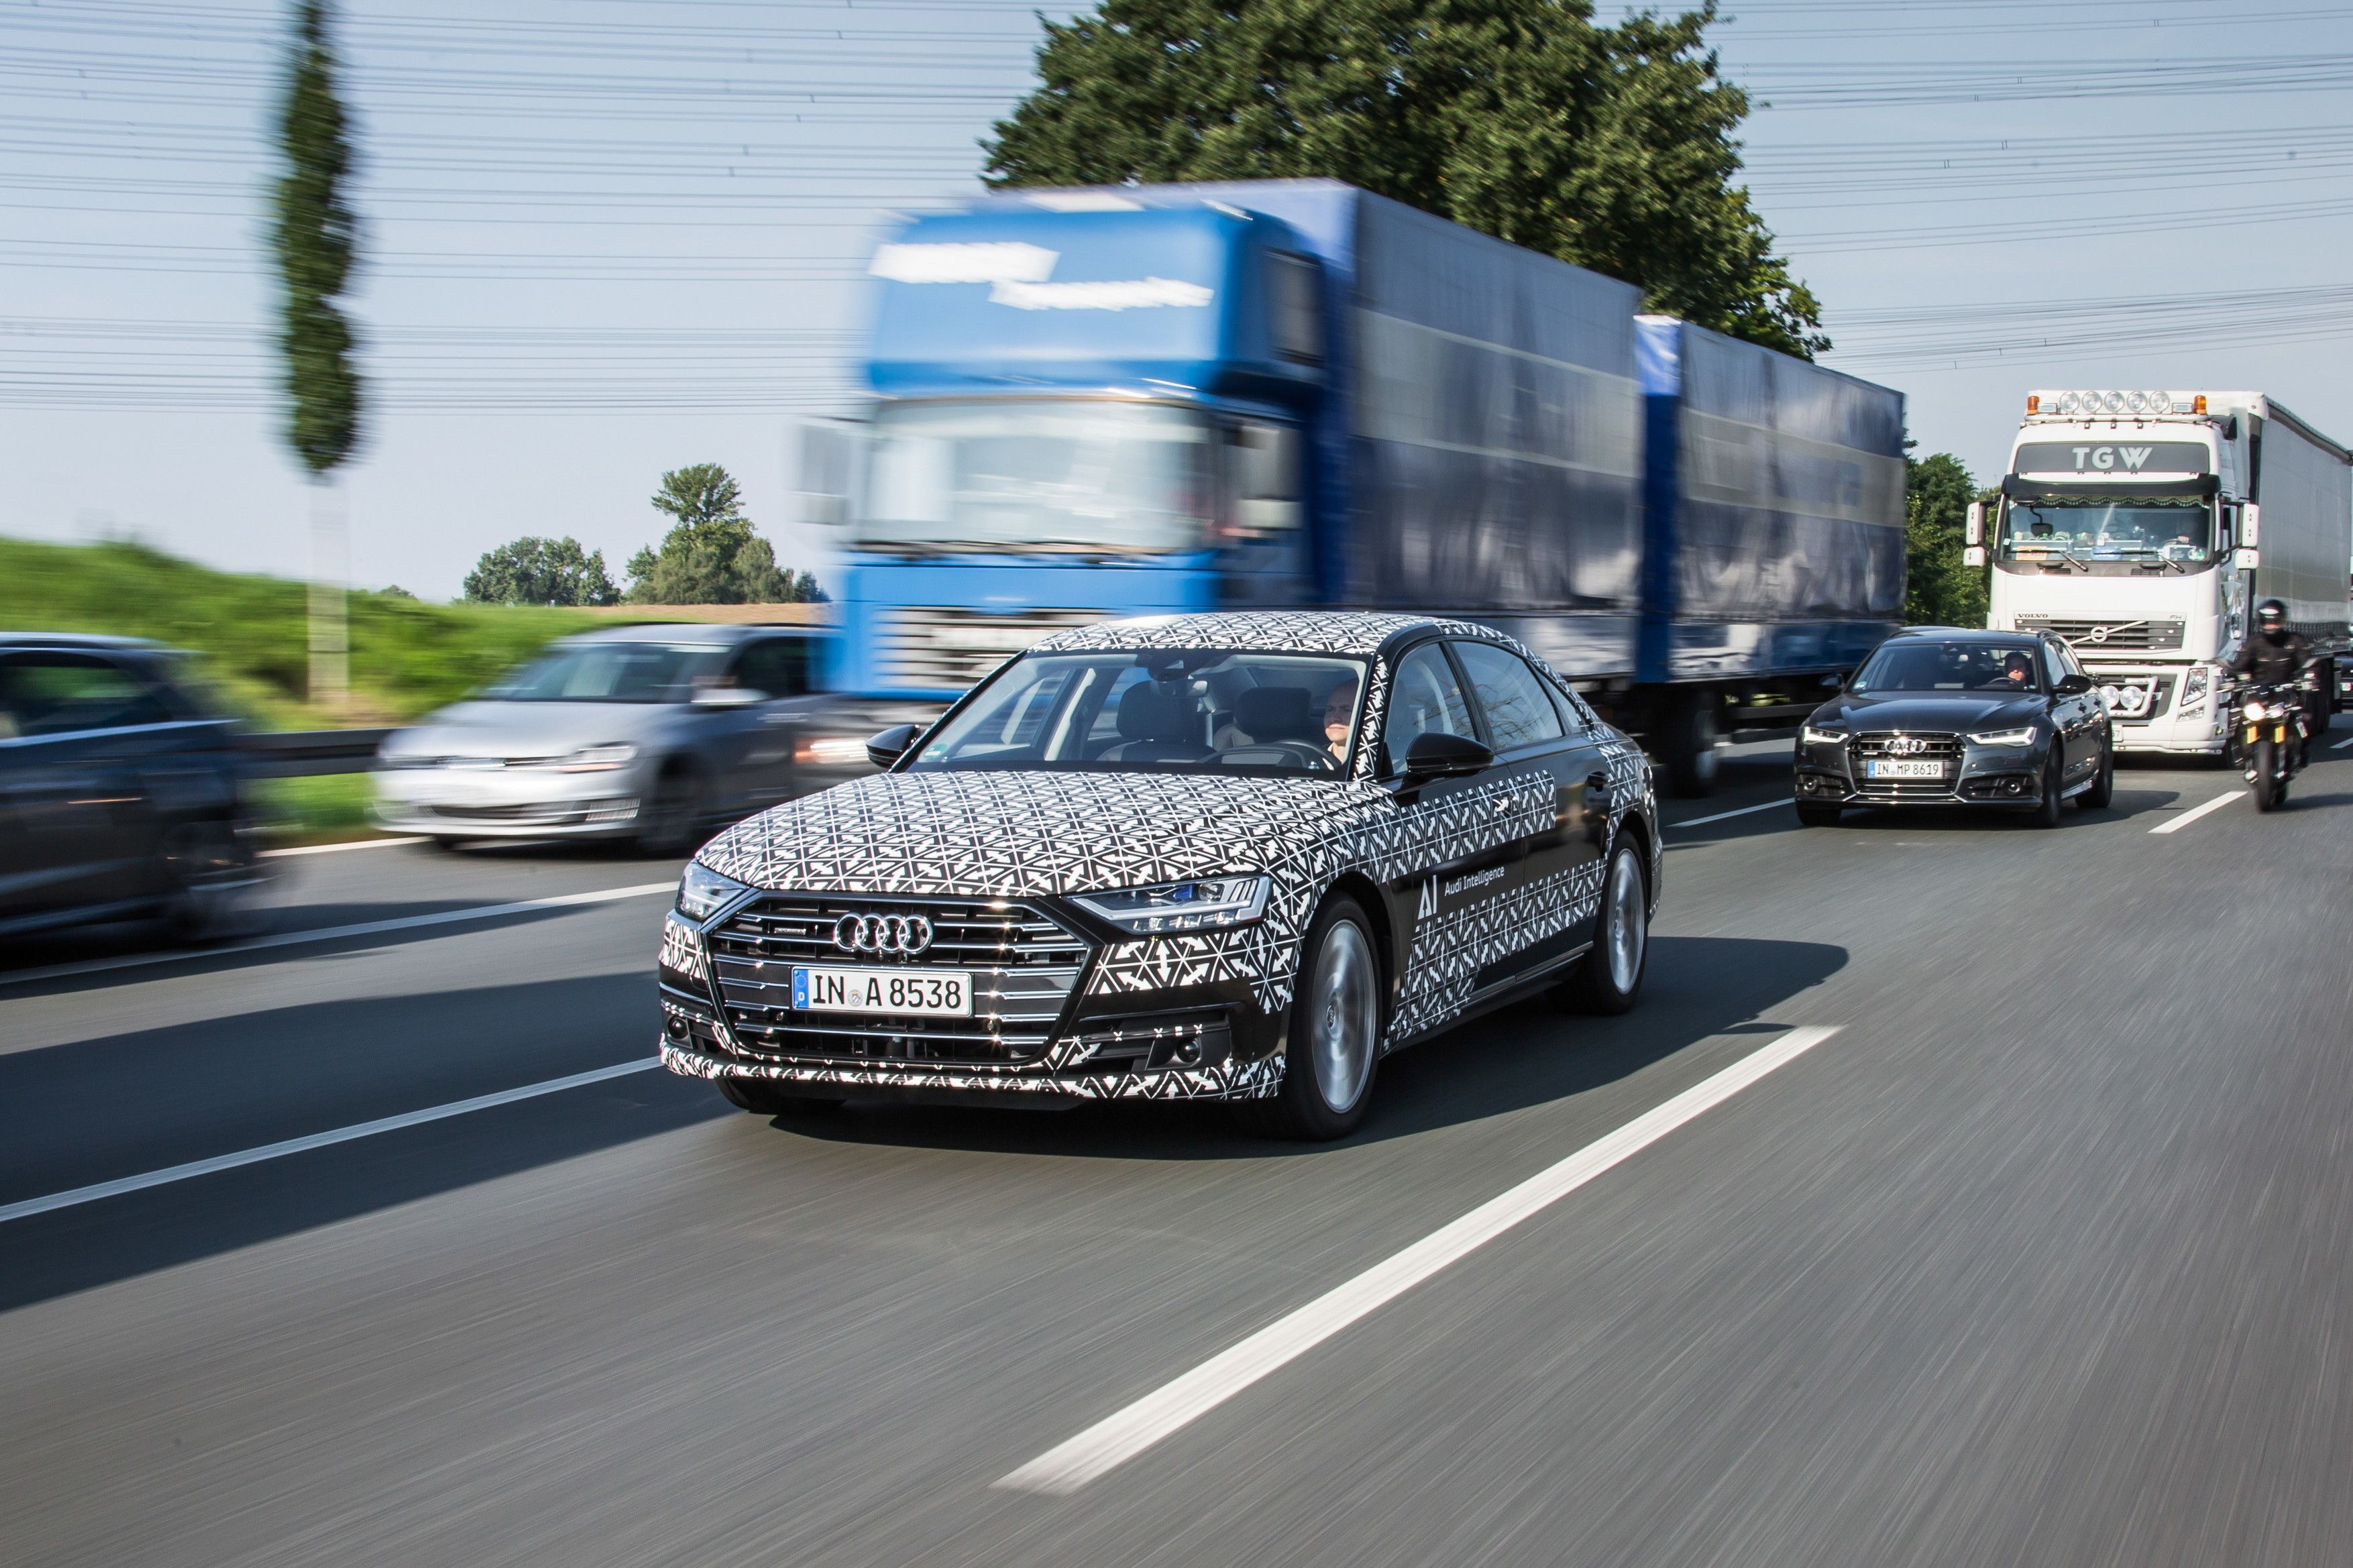 Audi ai drives you out of jams http vrzone com